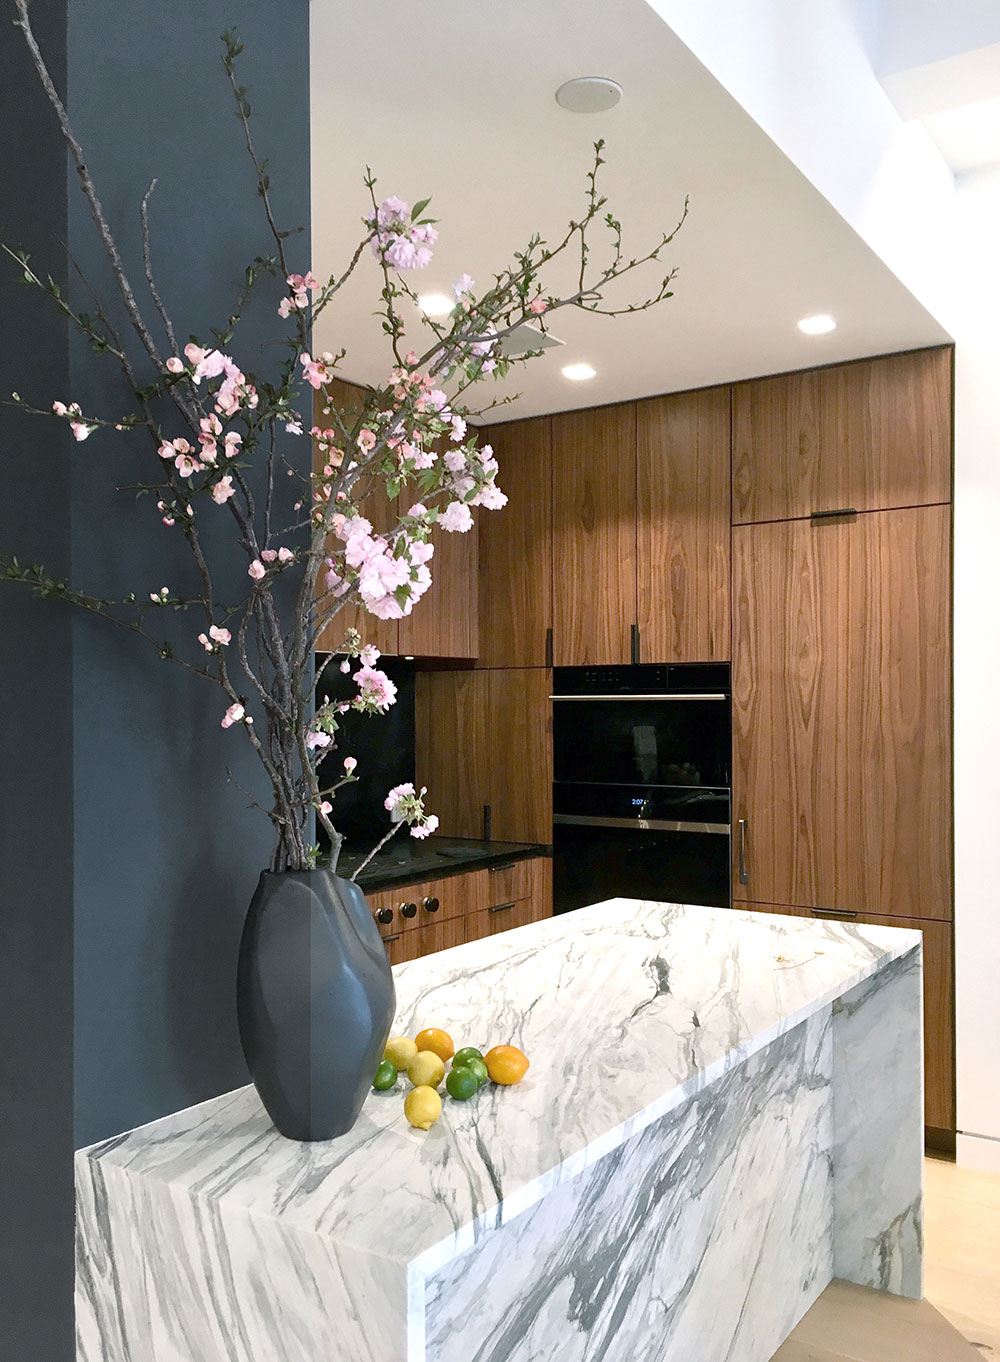 Dark walnut cabinetry and marble island textures on the kitchen of the Loft renovation project in Chelsea, New York City designed by the architecture studio Danny Forster & Architecture